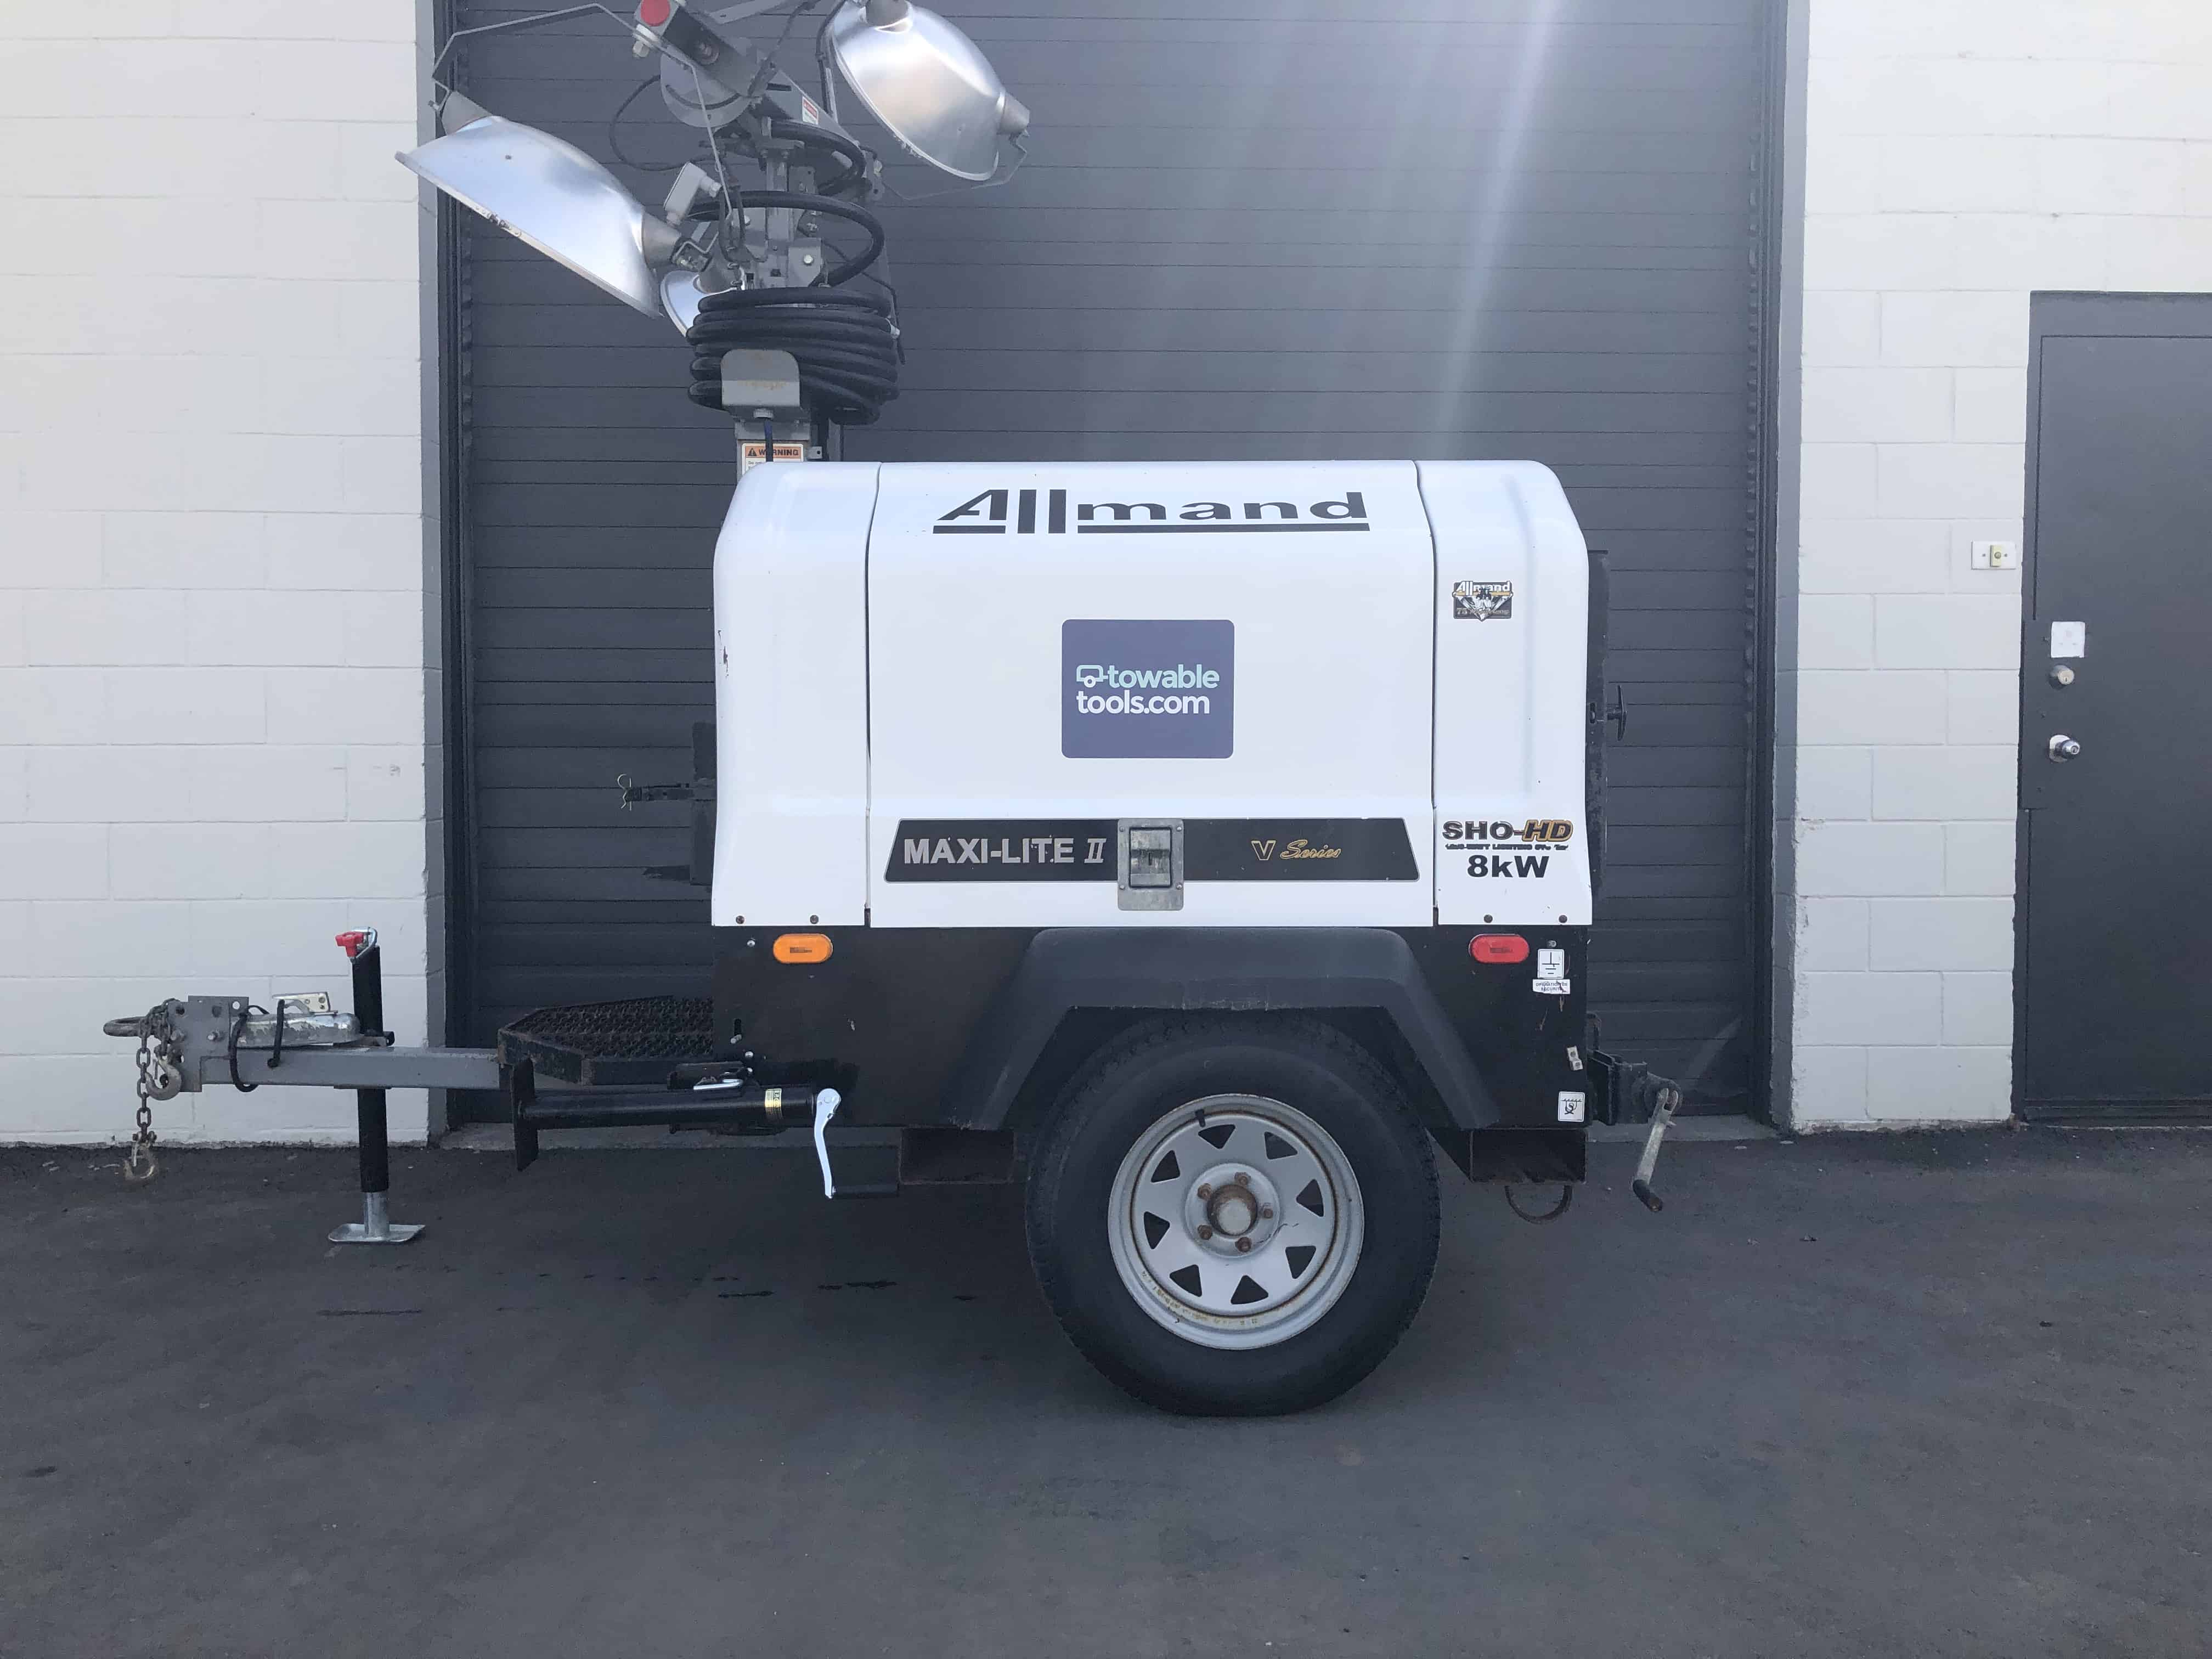 Used Allmand Maxi-Lite II 8kw for sale - Towable Tools